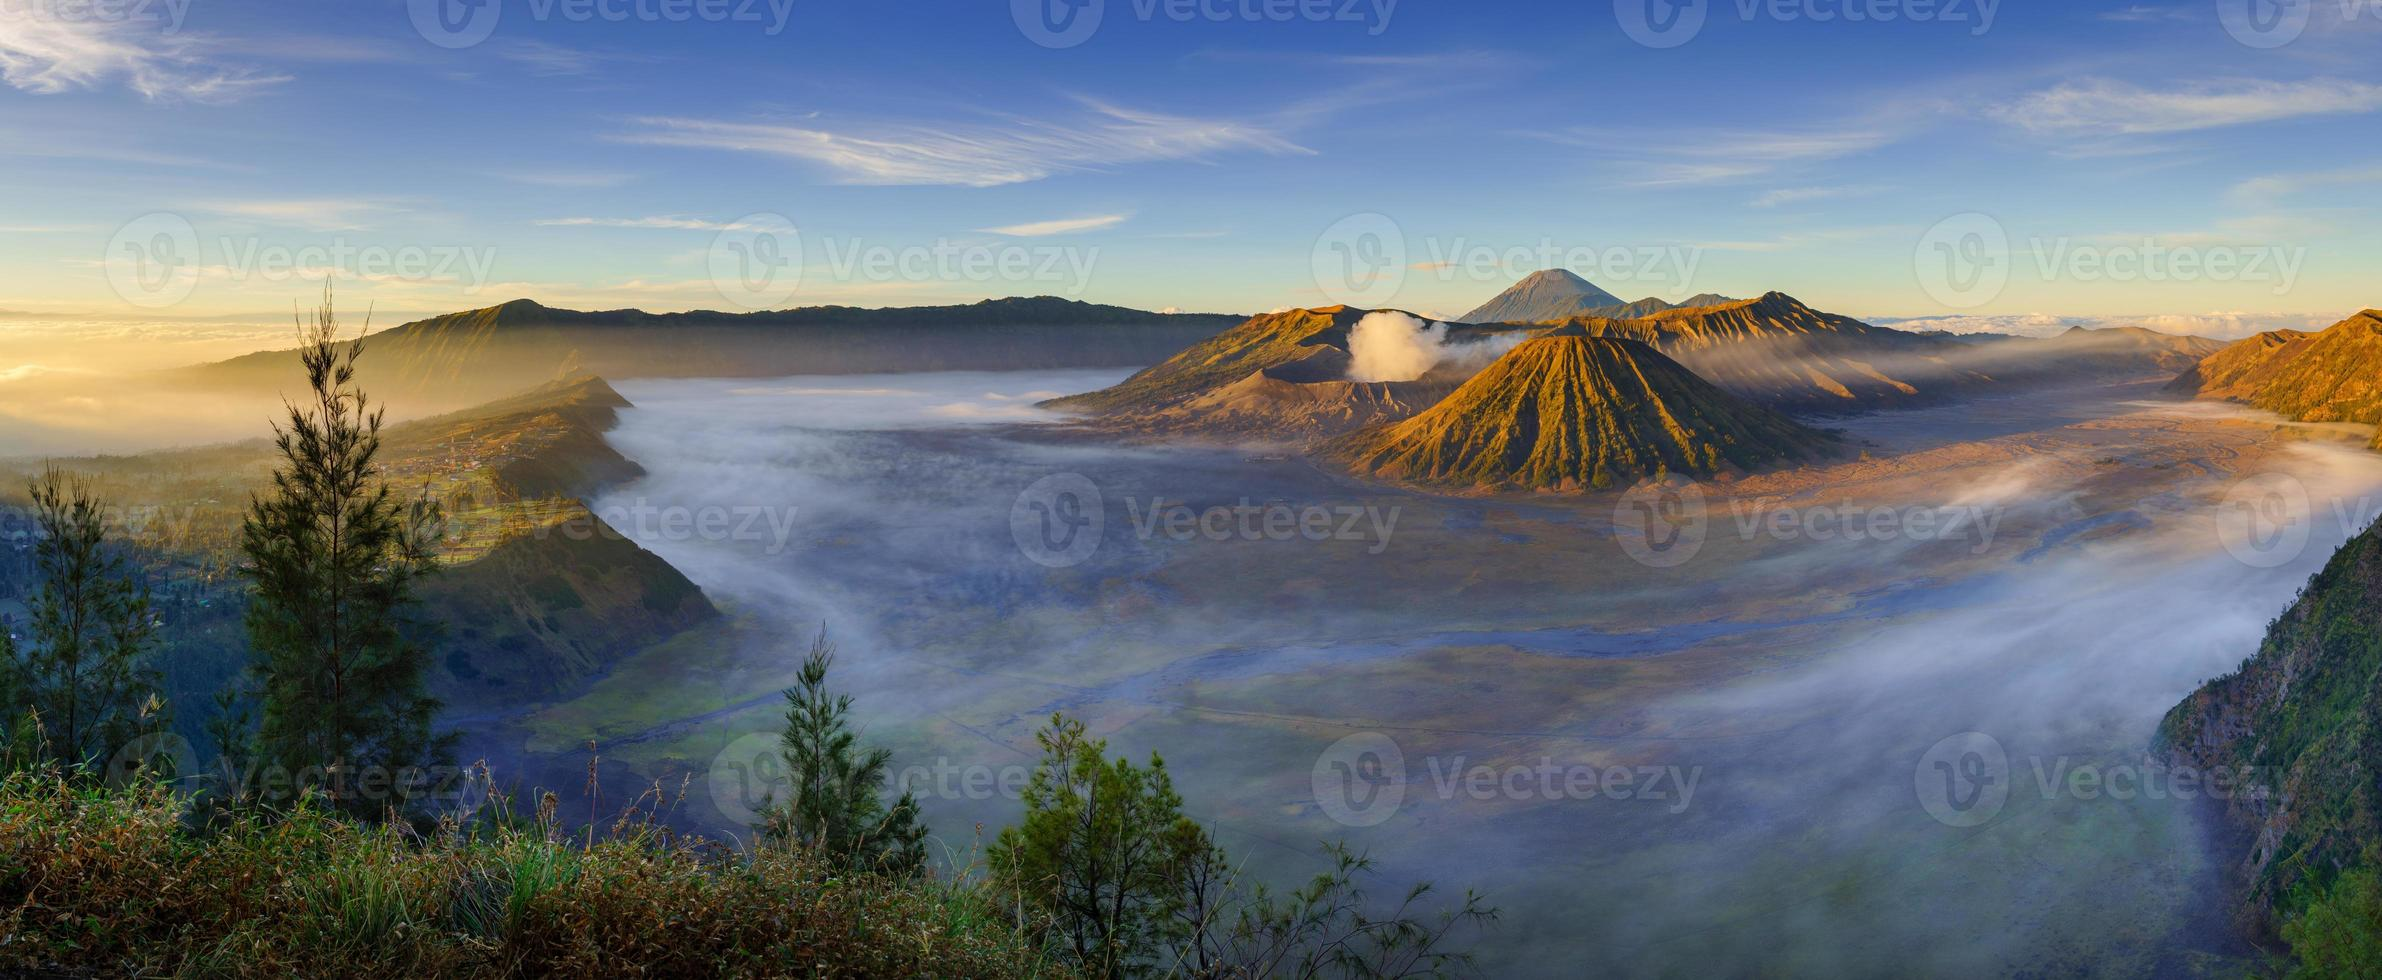 Mount Bromo vulkan, East Java, Surabuya, Indonesien foto